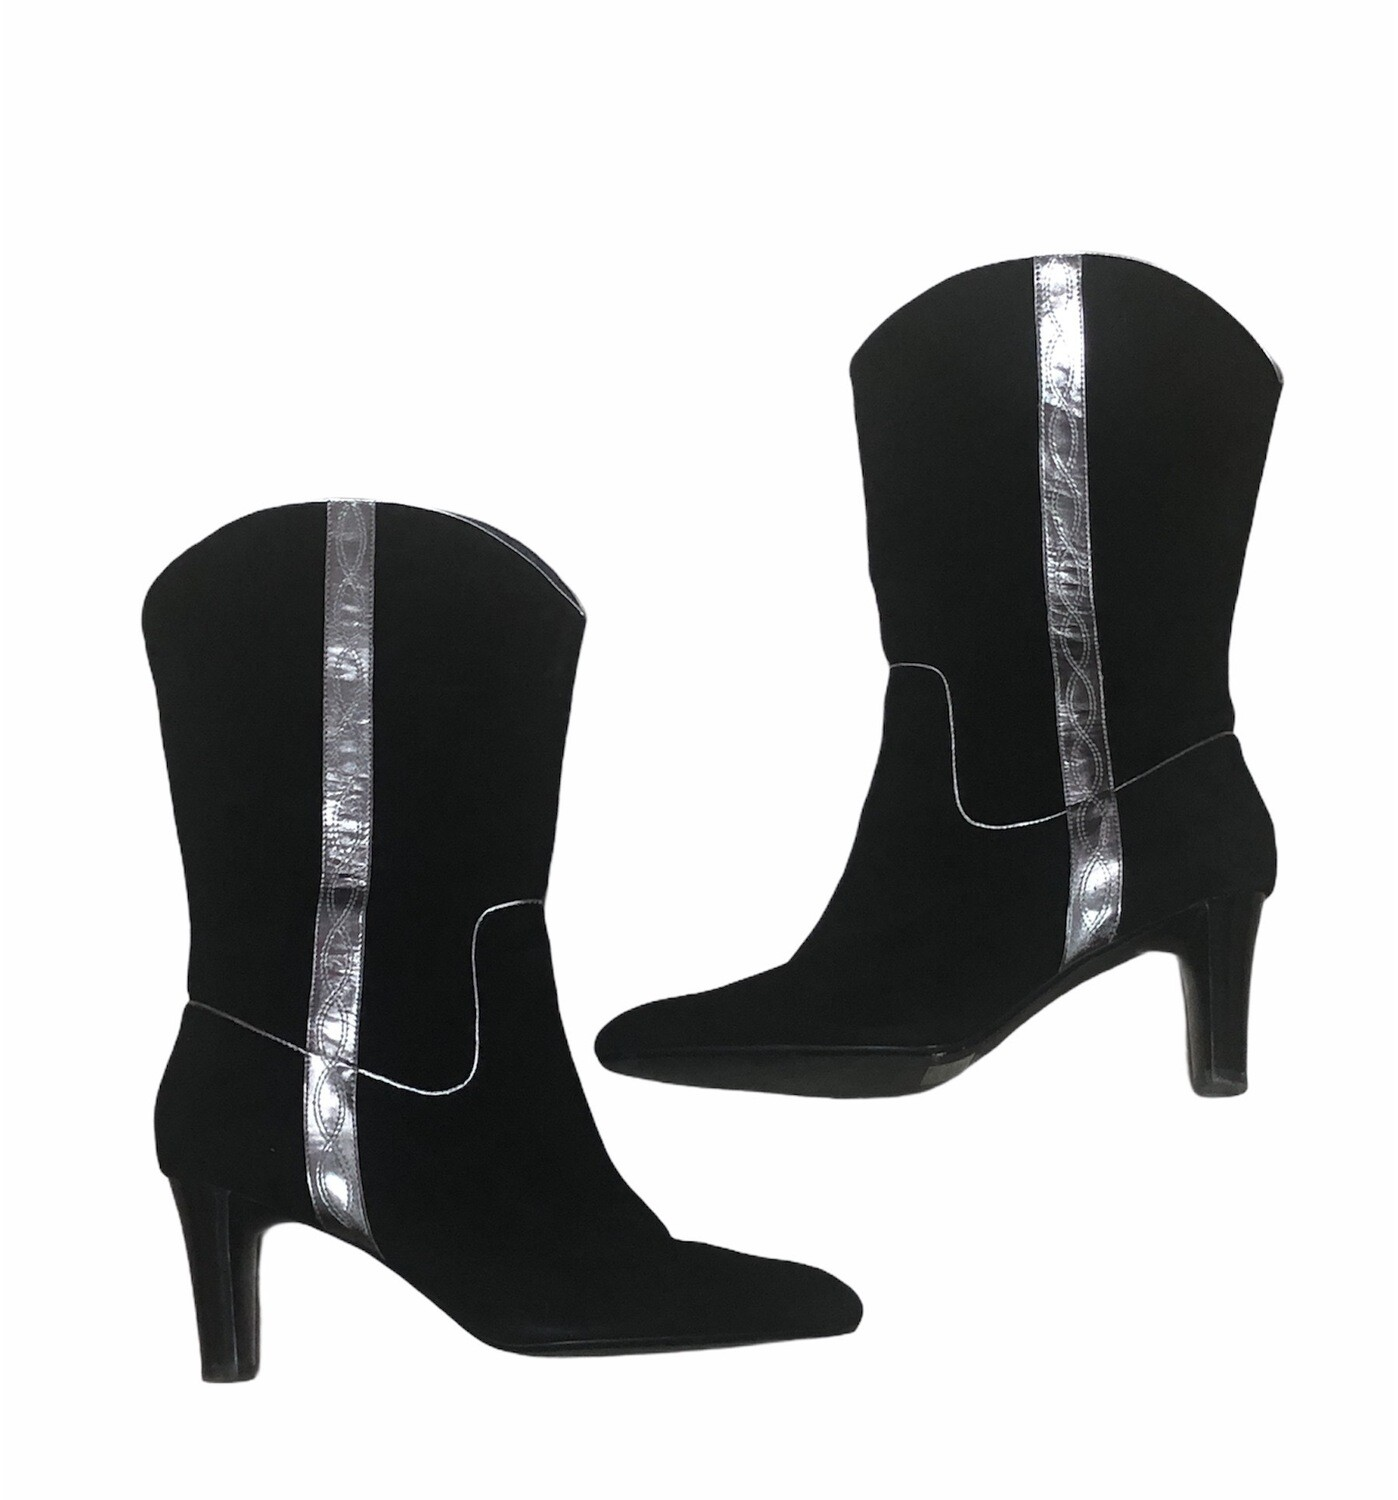 COLDWATER CREEK Black Suede and Pewter  Hi Heel Boots size 10 $119